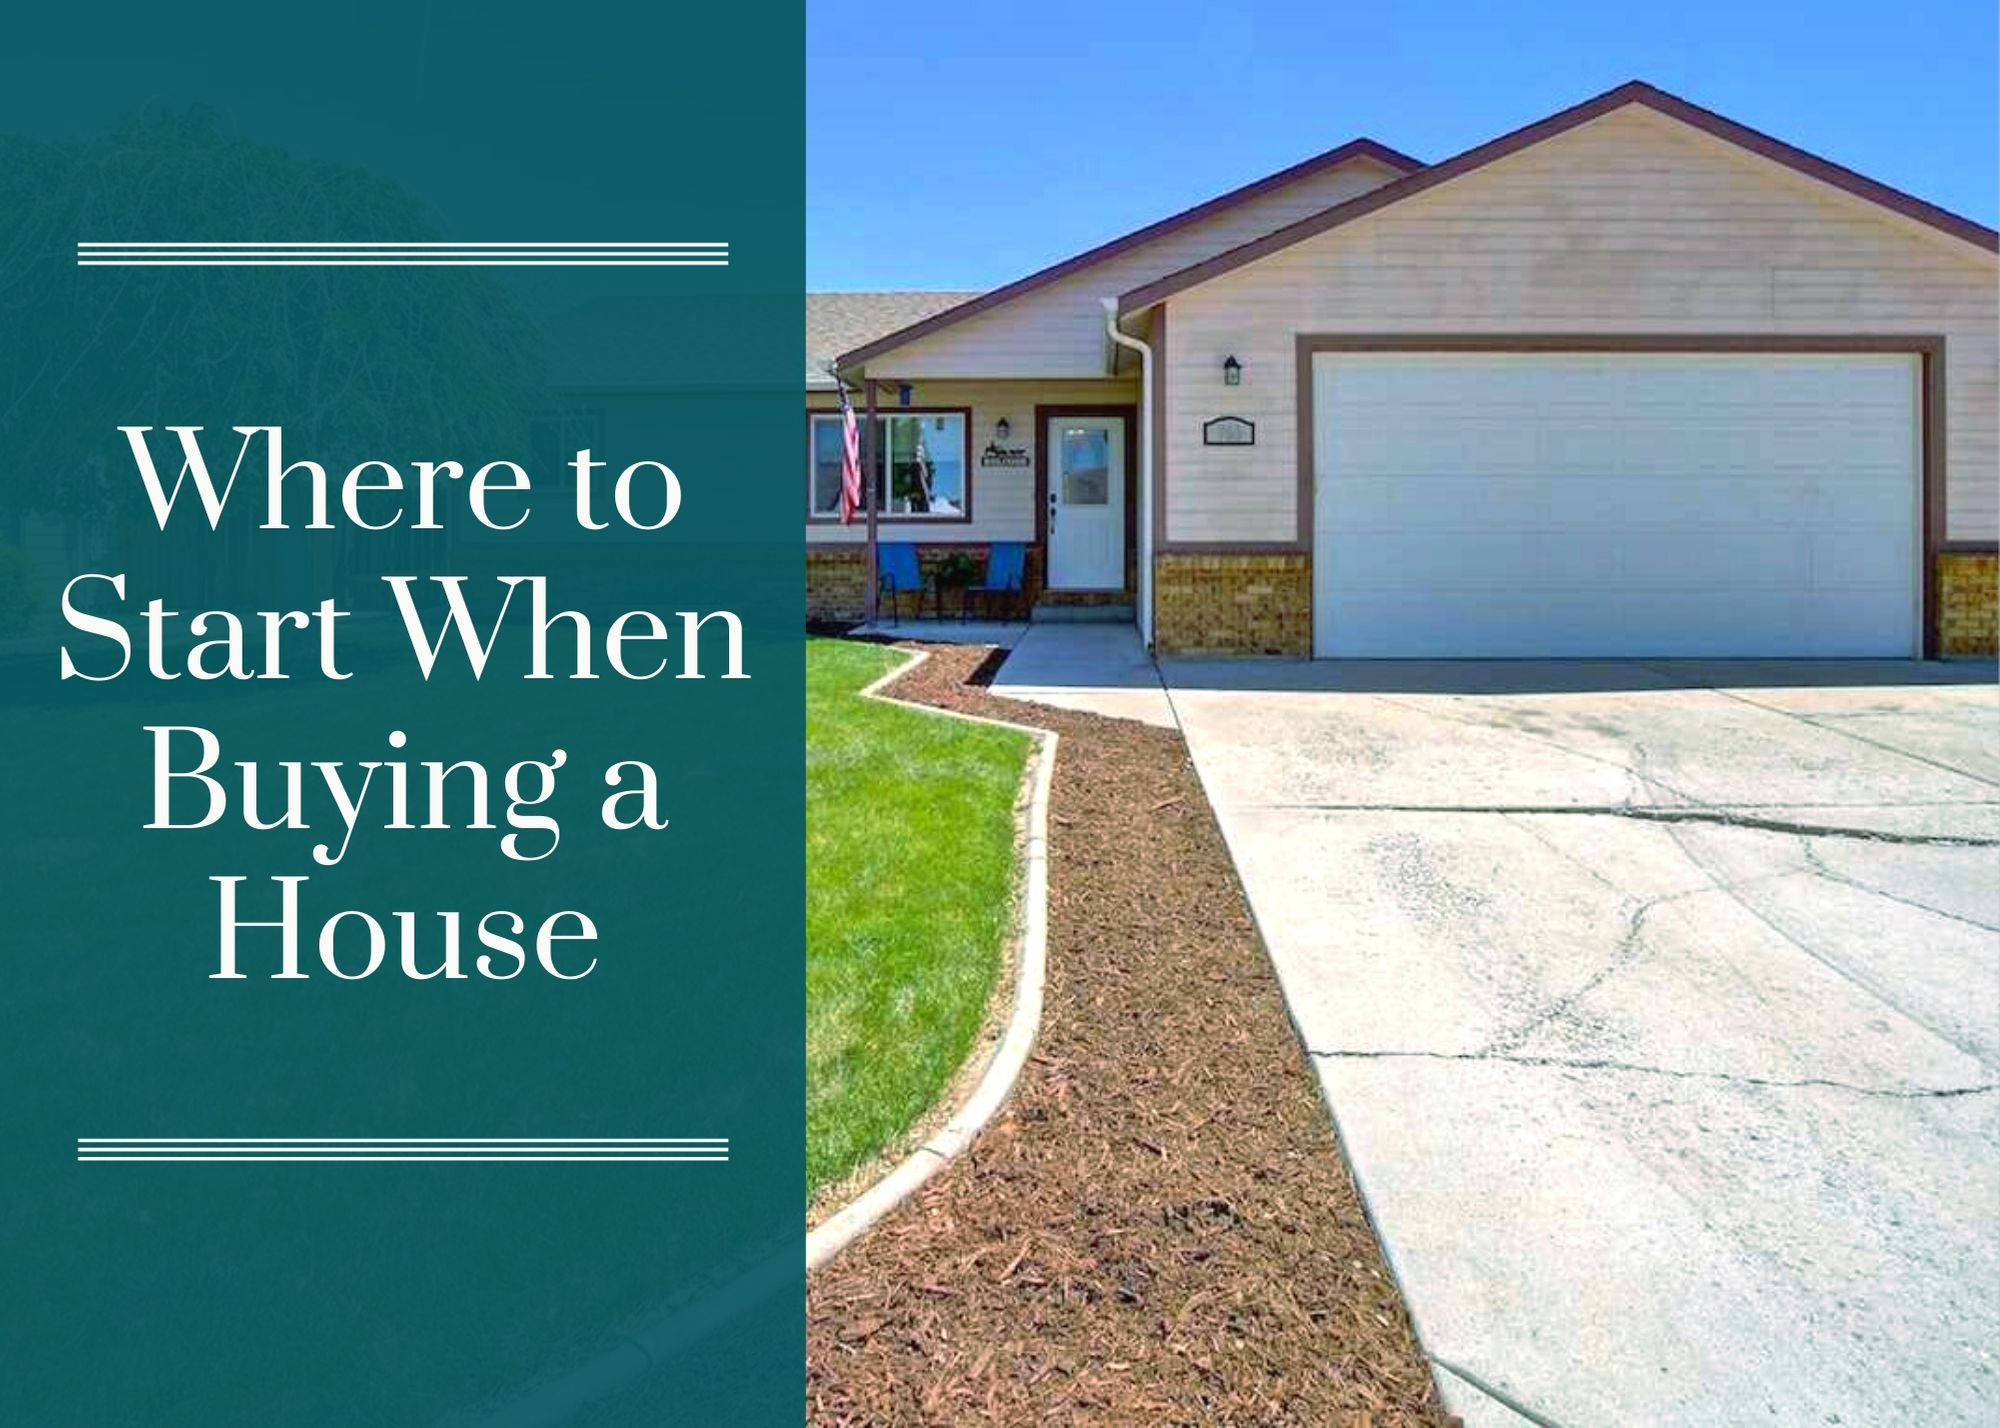 Where to Start When Buying a House